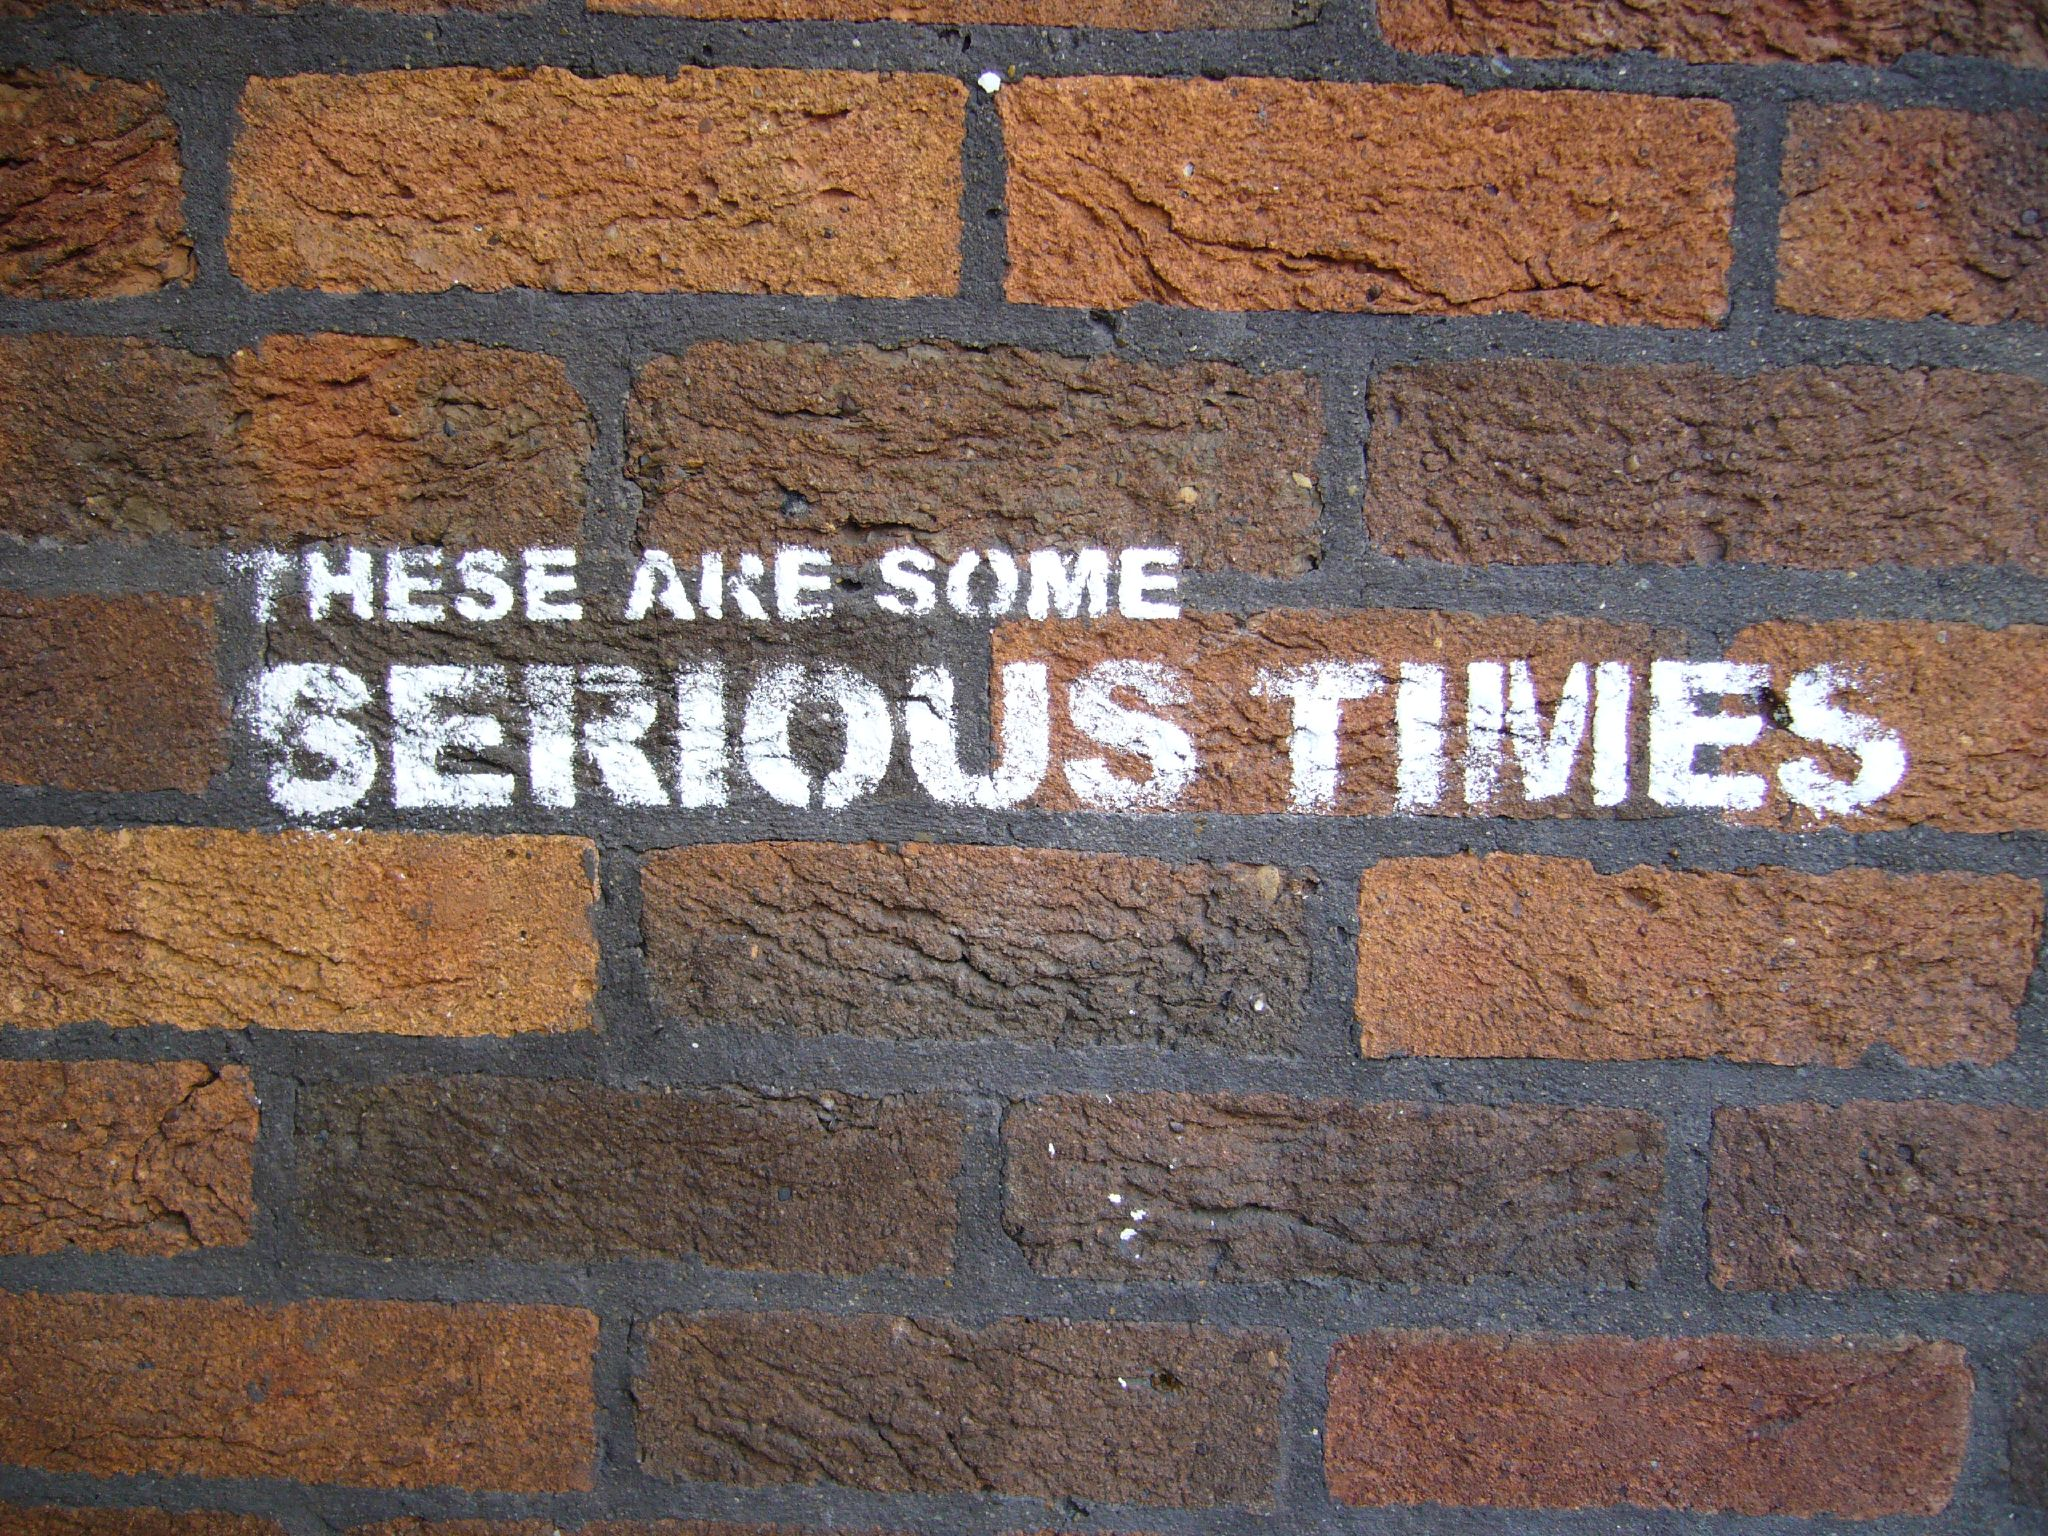 Graffiti on wall: These are some serious times